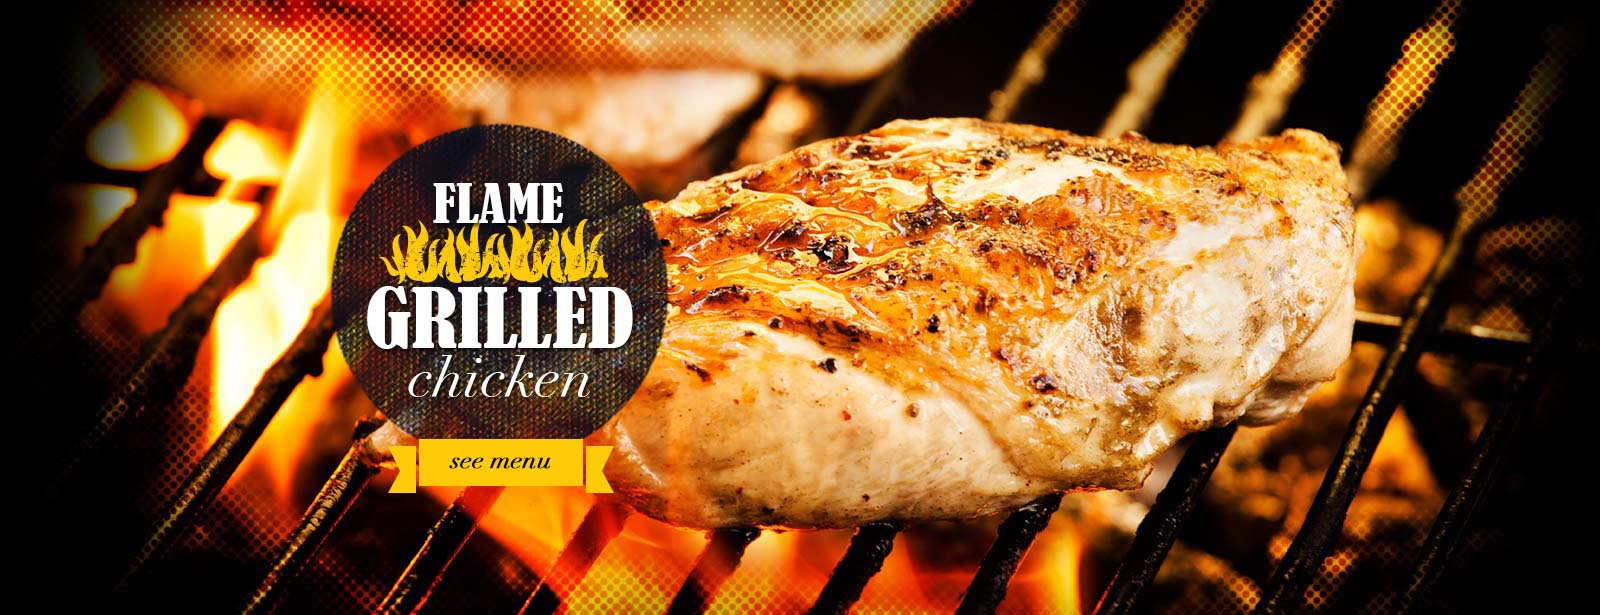 Ranch One Flame Grilled Chicken